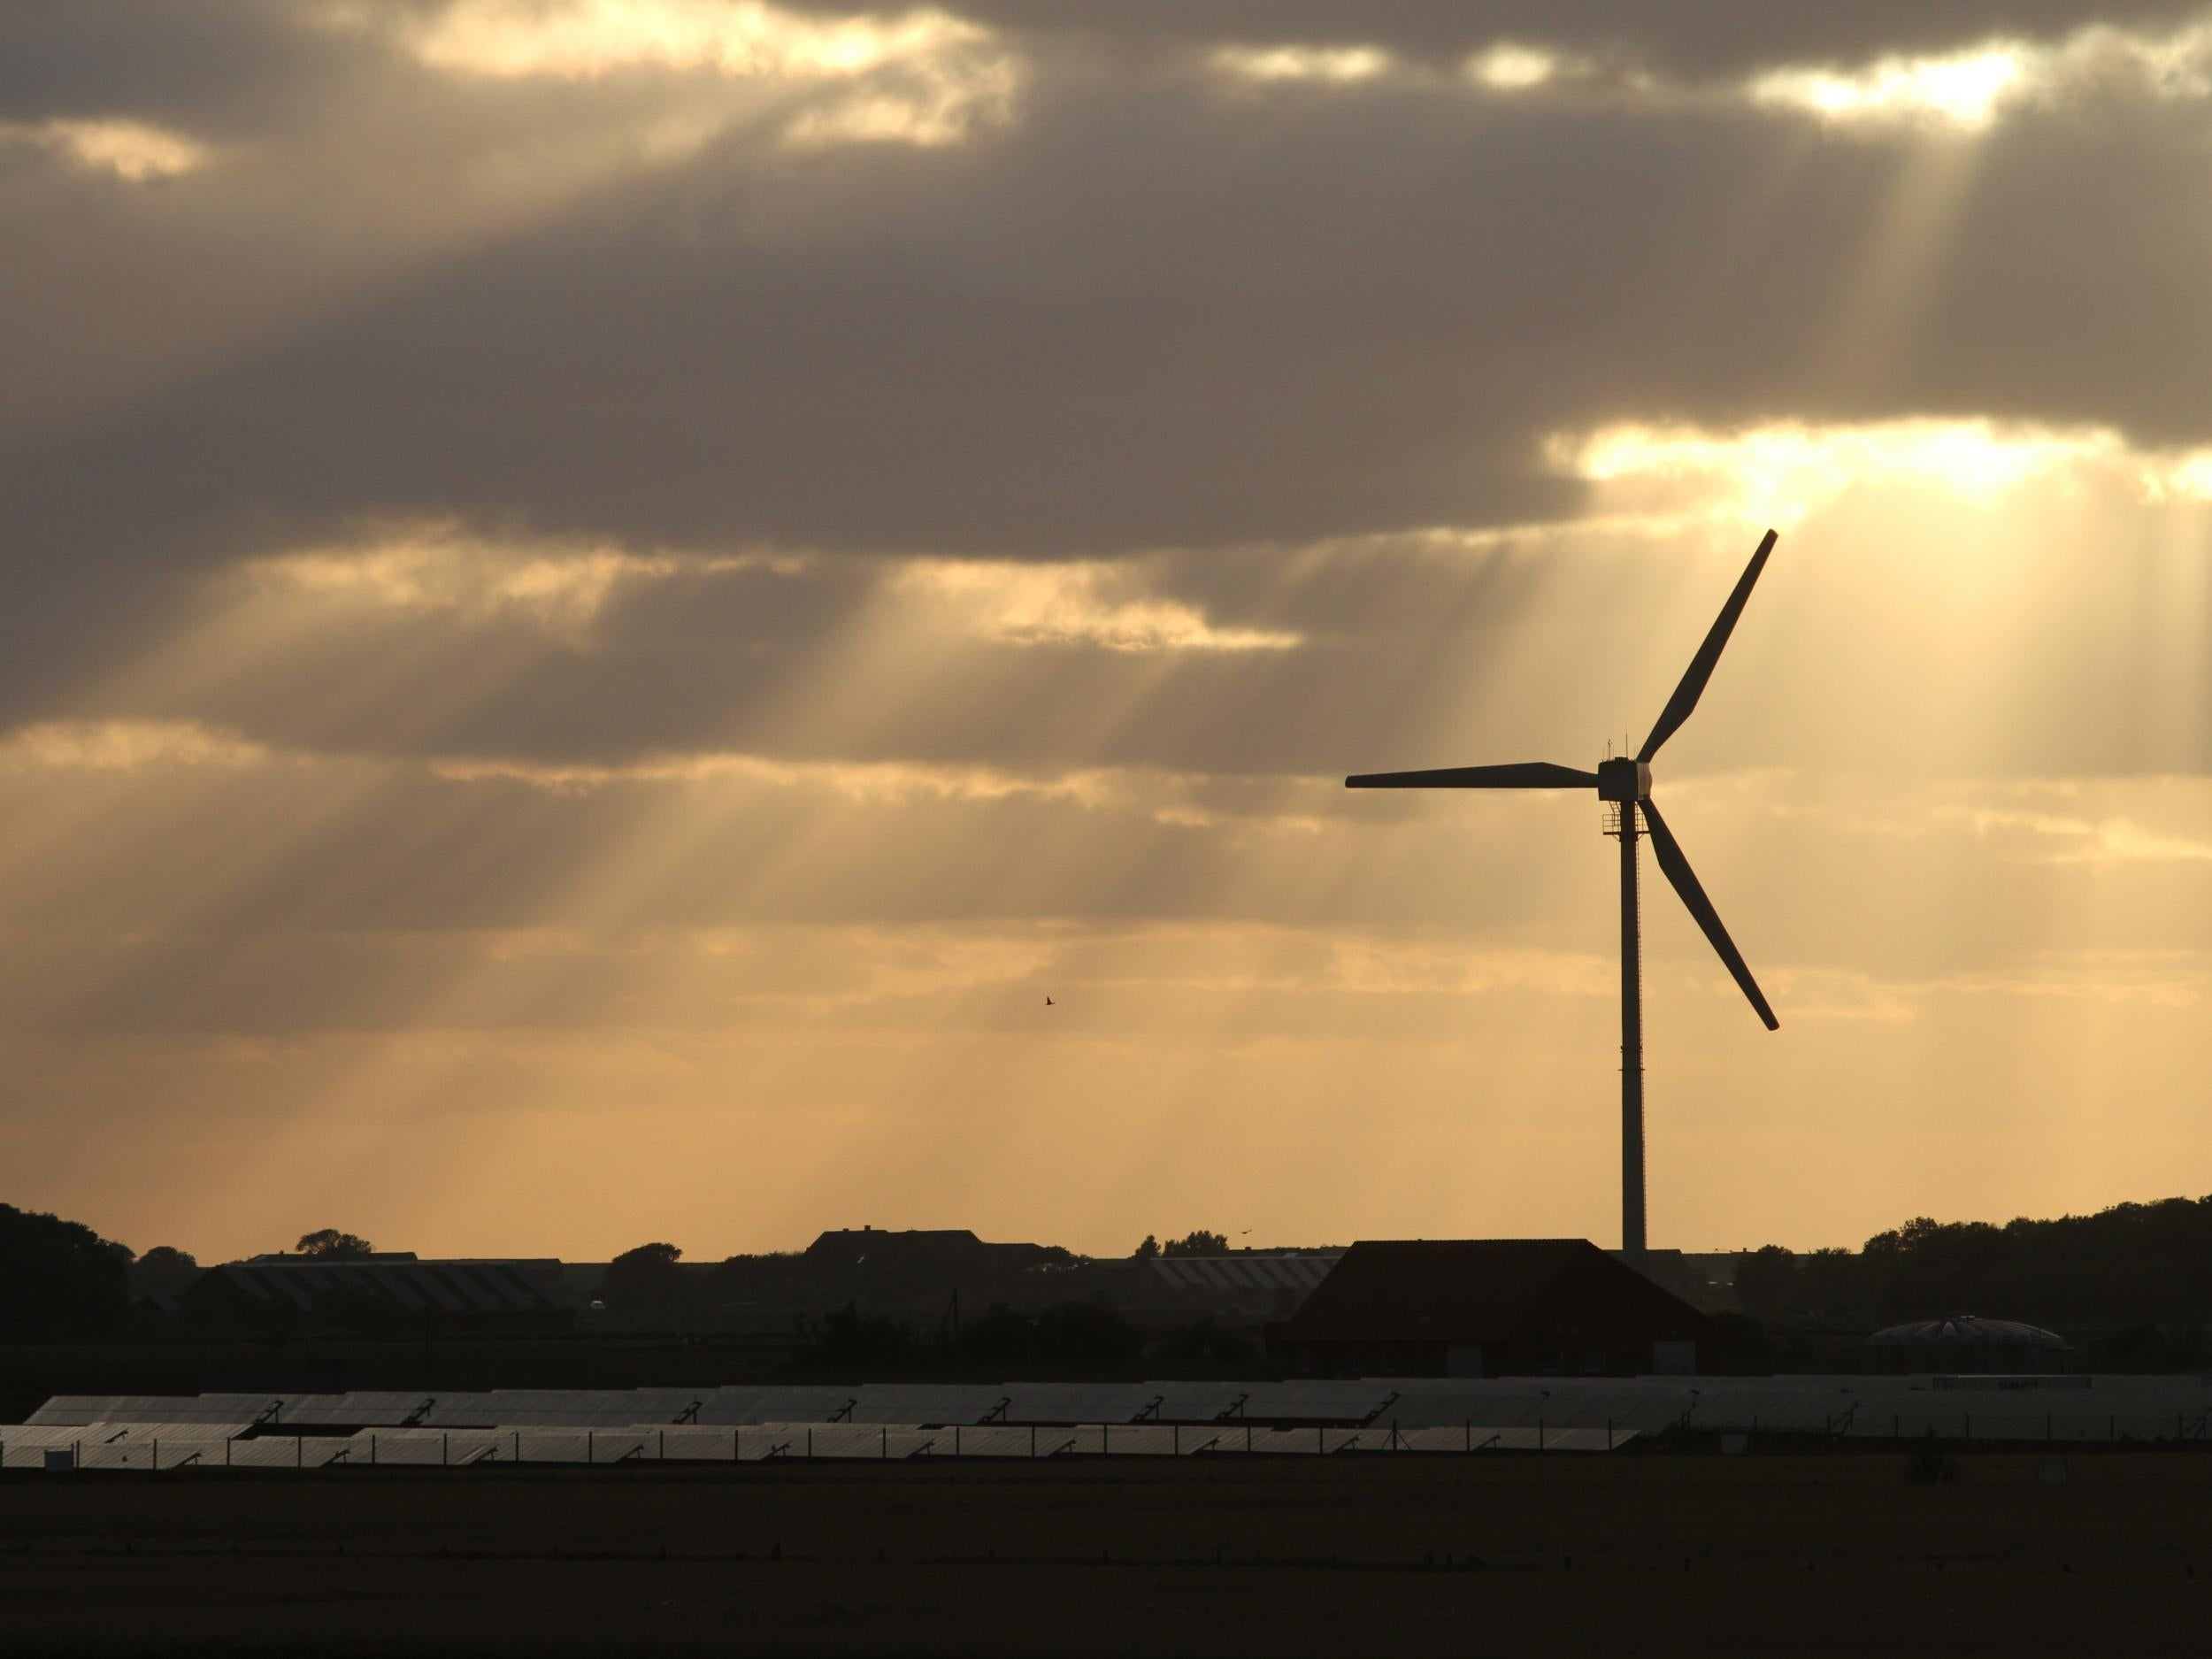 independent.co.uk - Ben Chapman - Save money on energy bills while investing in new wind farms with new UK startup